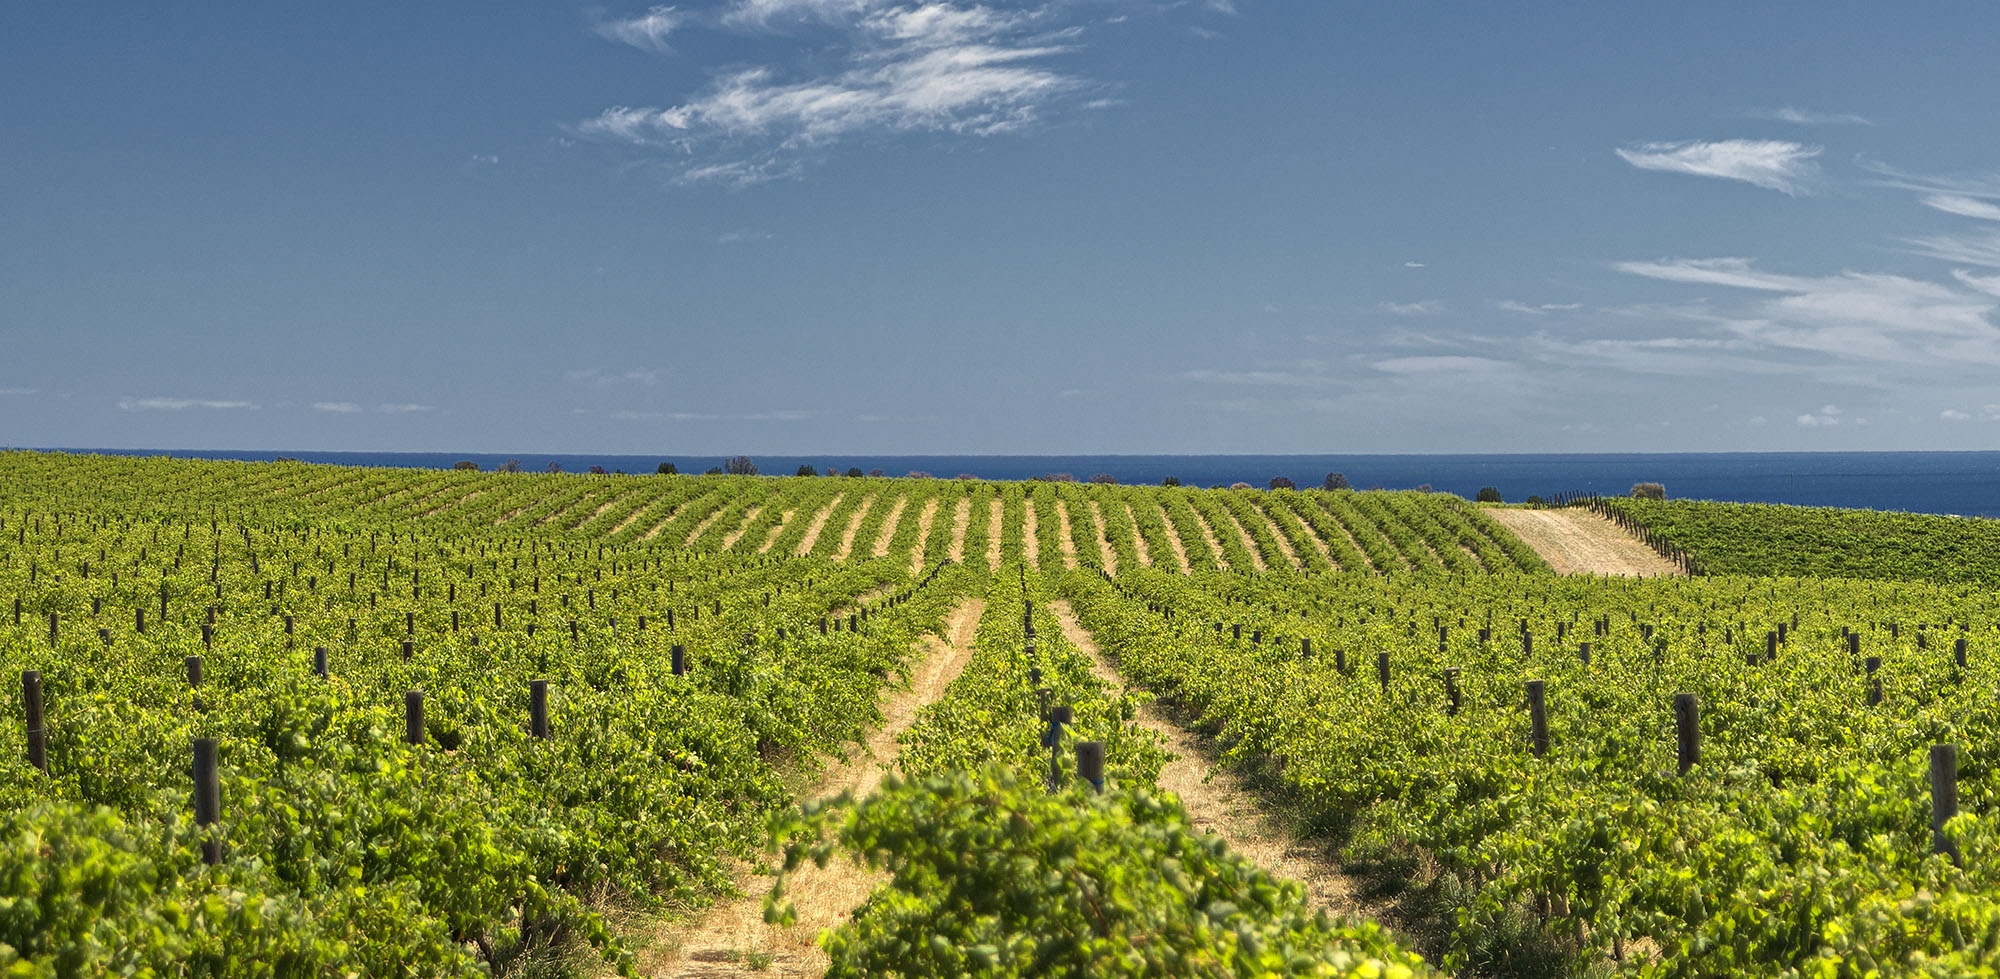 Great Australian Value Wines that You'll Never Find in the U.S.